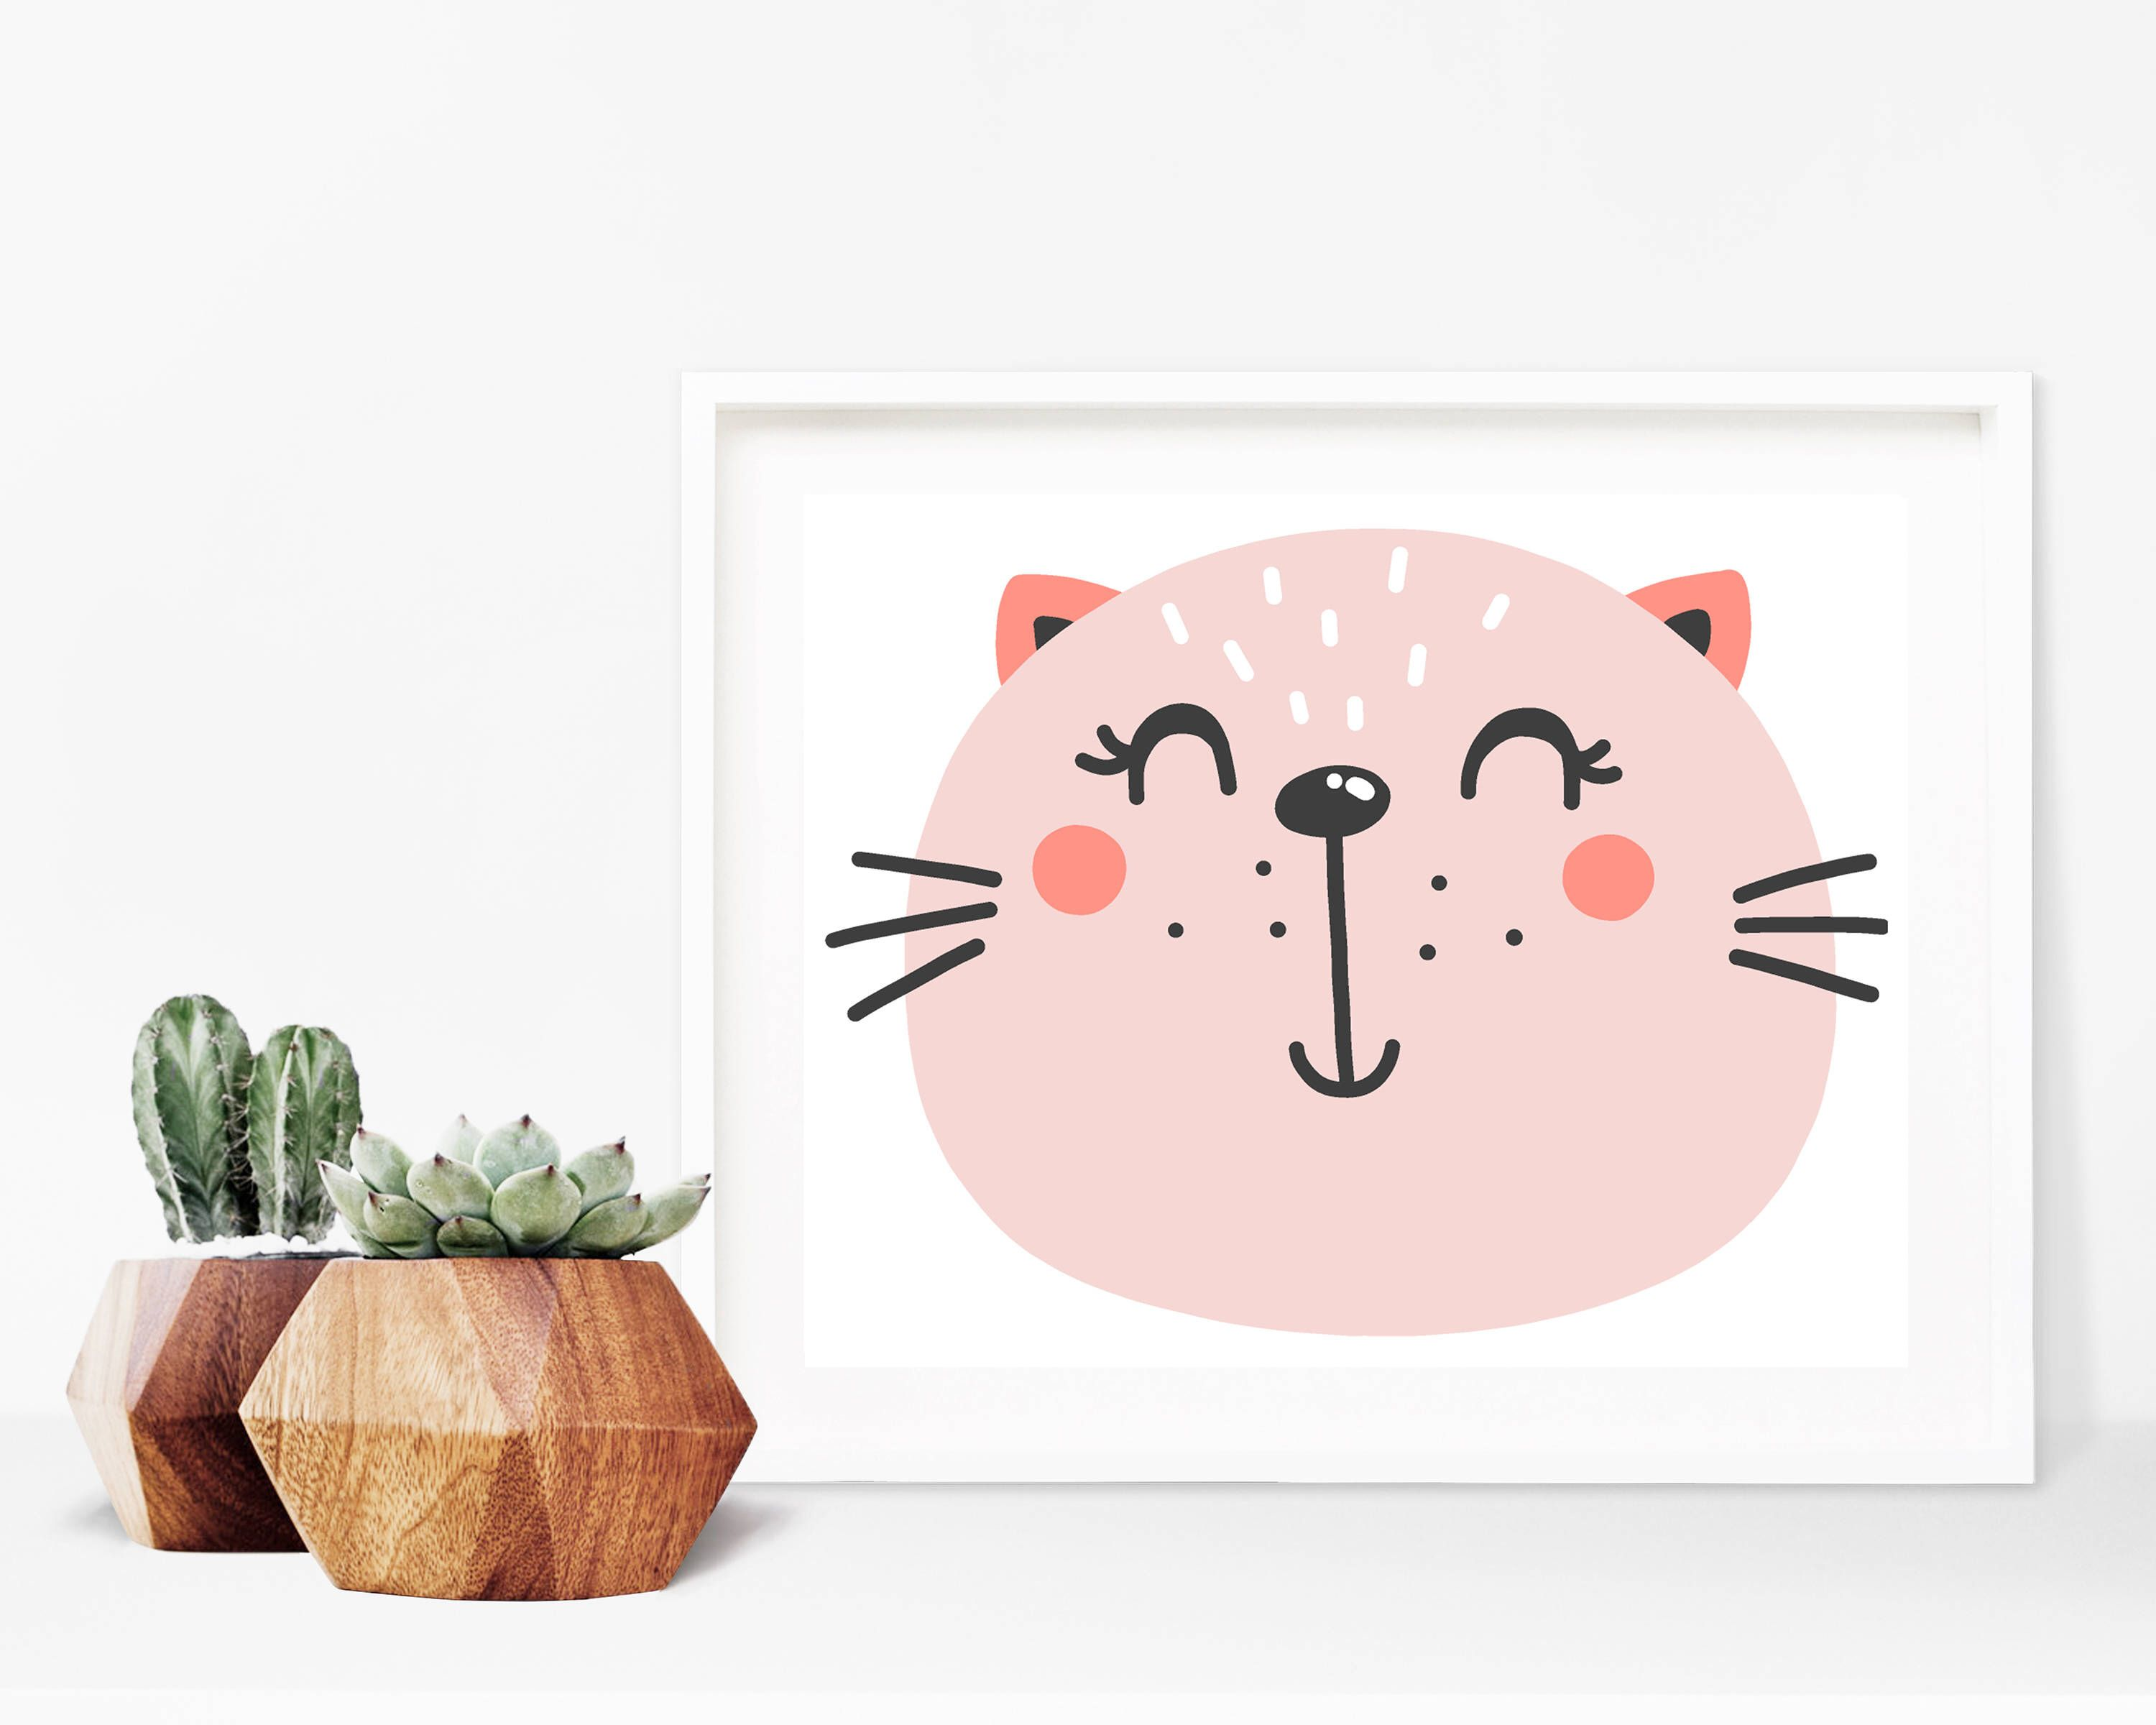 Critter Face Print - Printable Wall Art, 8x10 Kids Print, 8x10 Nursery Print, Printable Home Decor, Kids Decor, 8x10 Print, Kids Bedroom by creamcityprintables on Etsy https://www.etsy.com/listing/522185092/critter-face-print-printable-wall-art